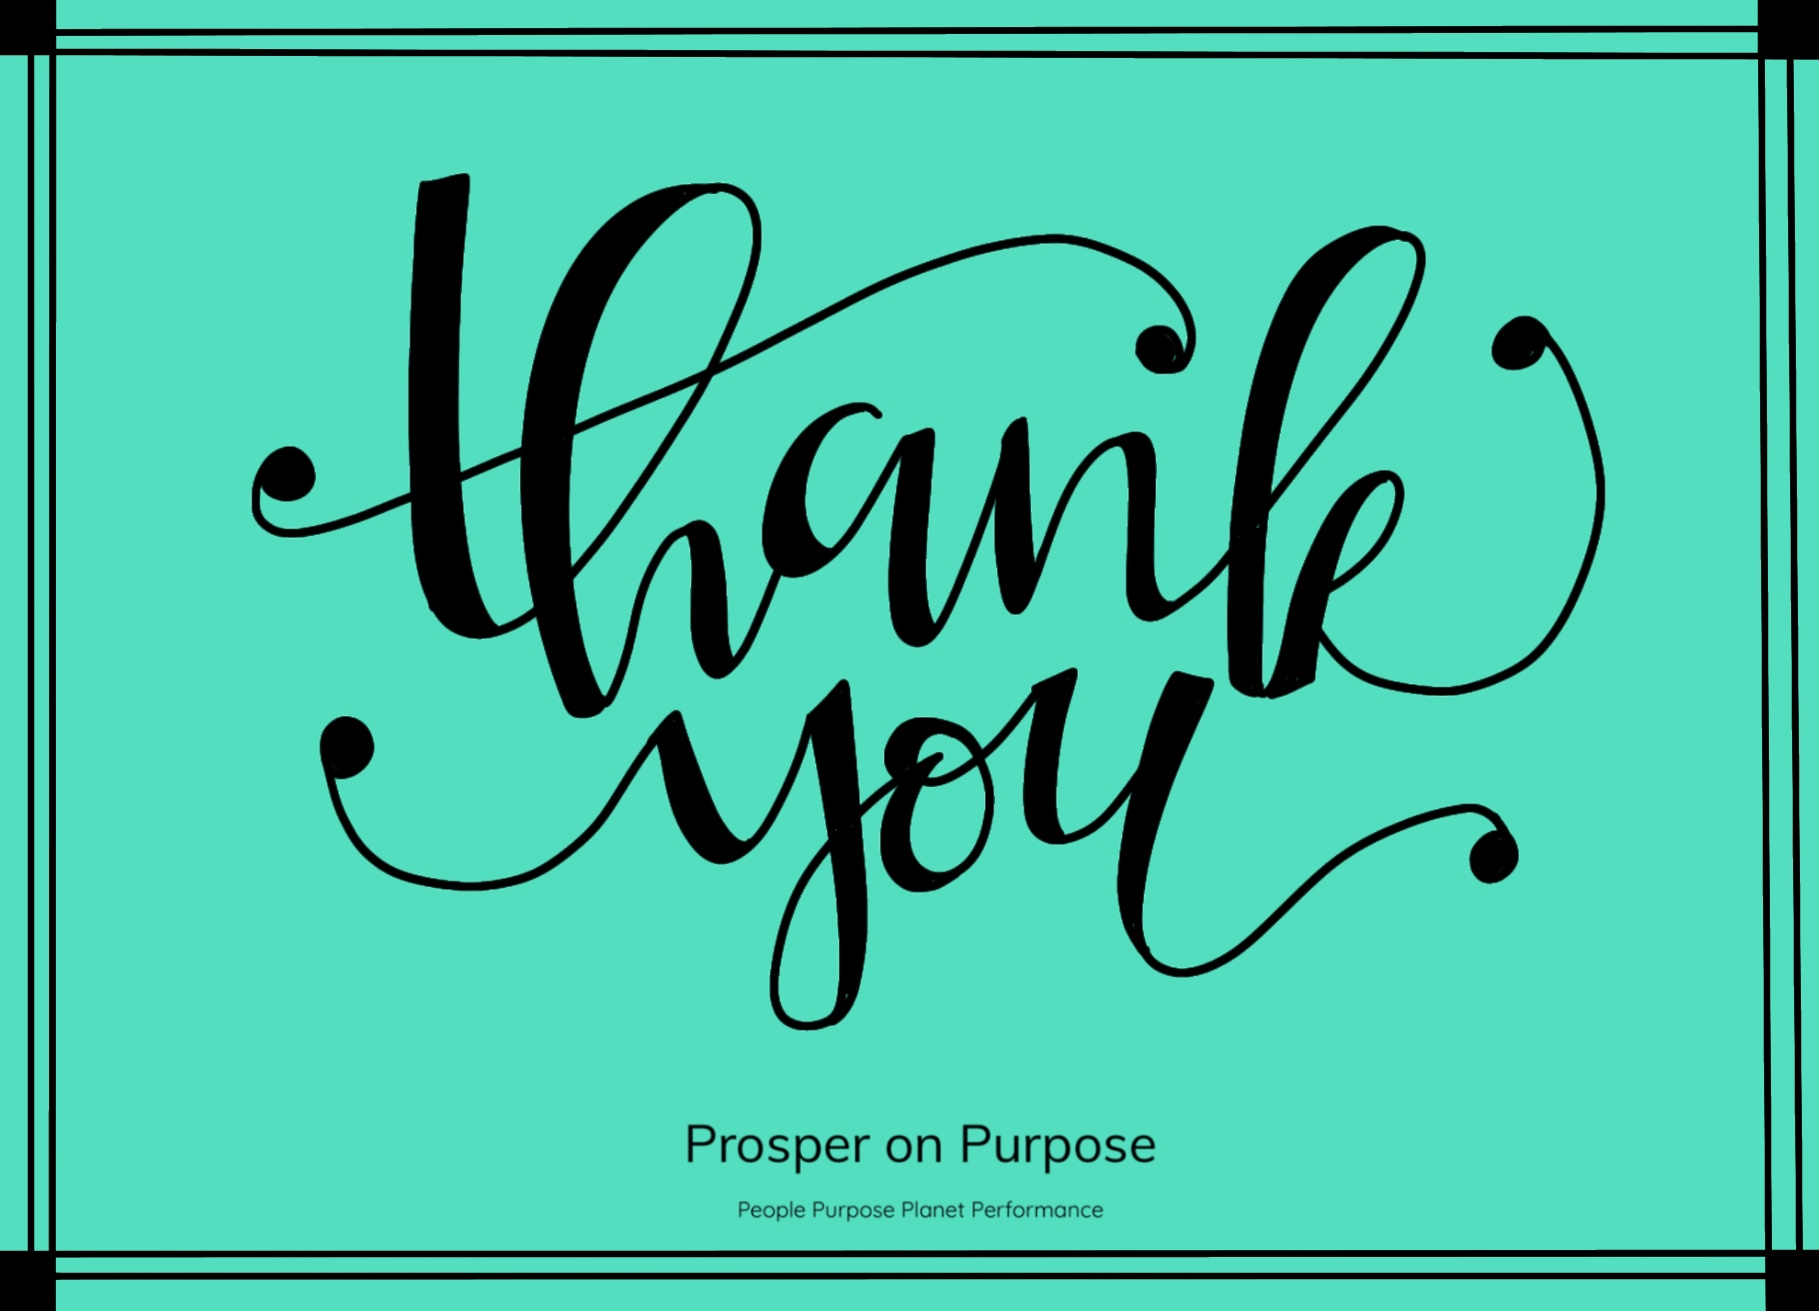 Prosper on Purpose - thank you